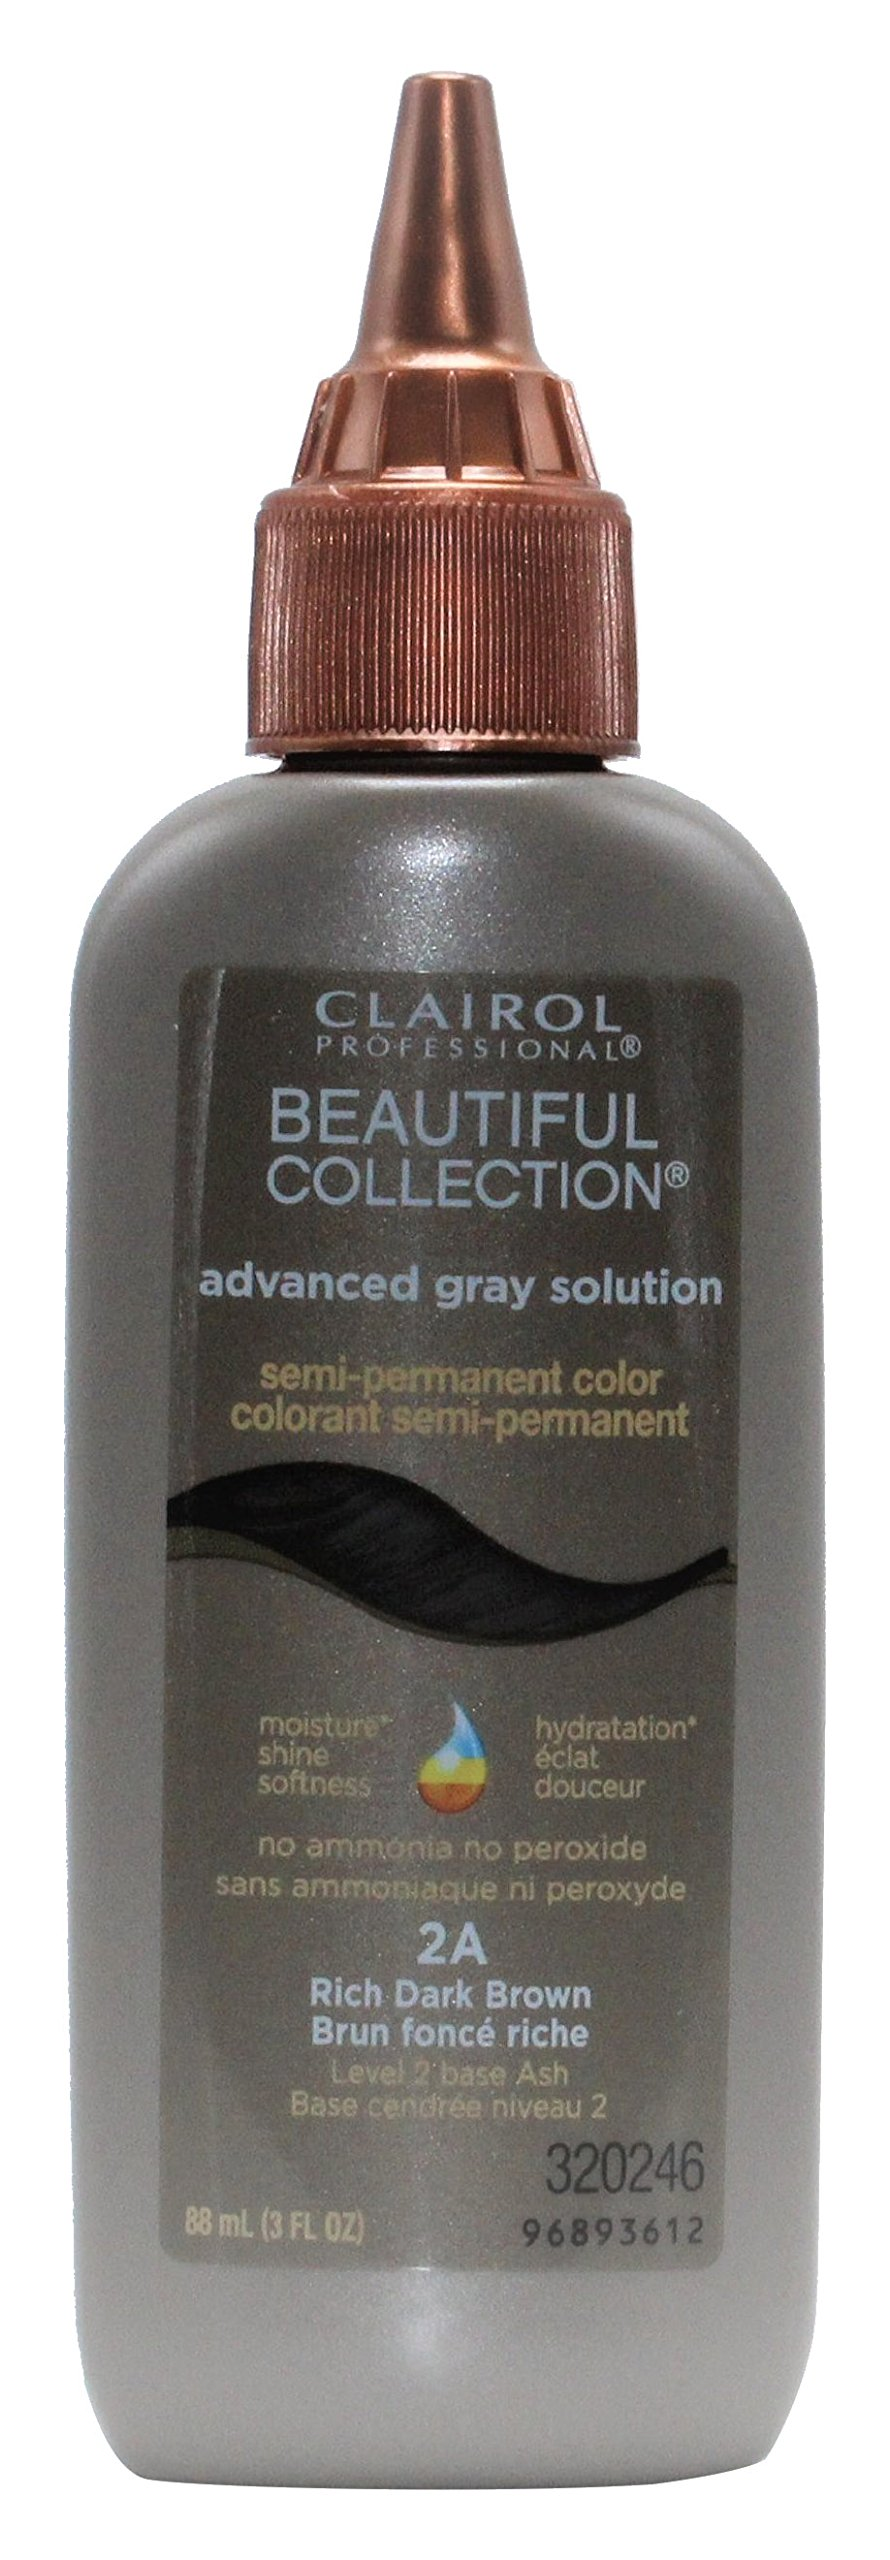 Amazon Clairol Professional Beautiful Collection Semi